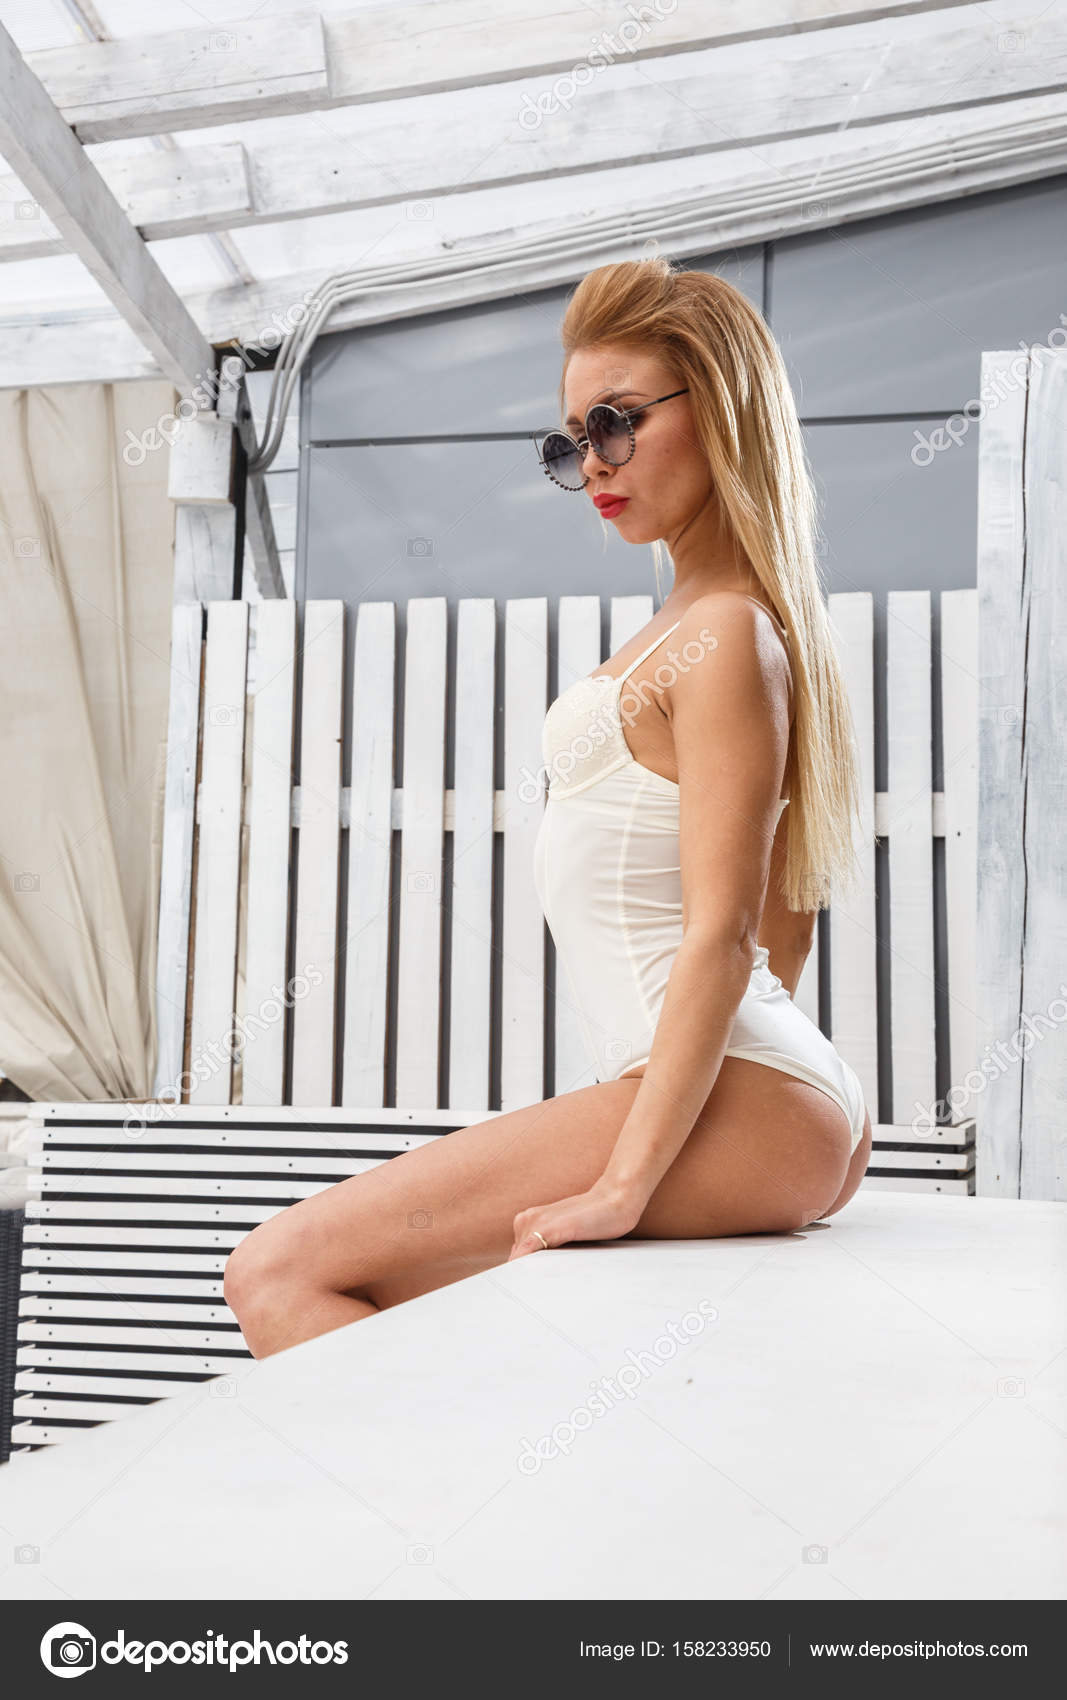 6a6285543b Beautiful blonde woman posing sensually on white fence background — Photo  by ...